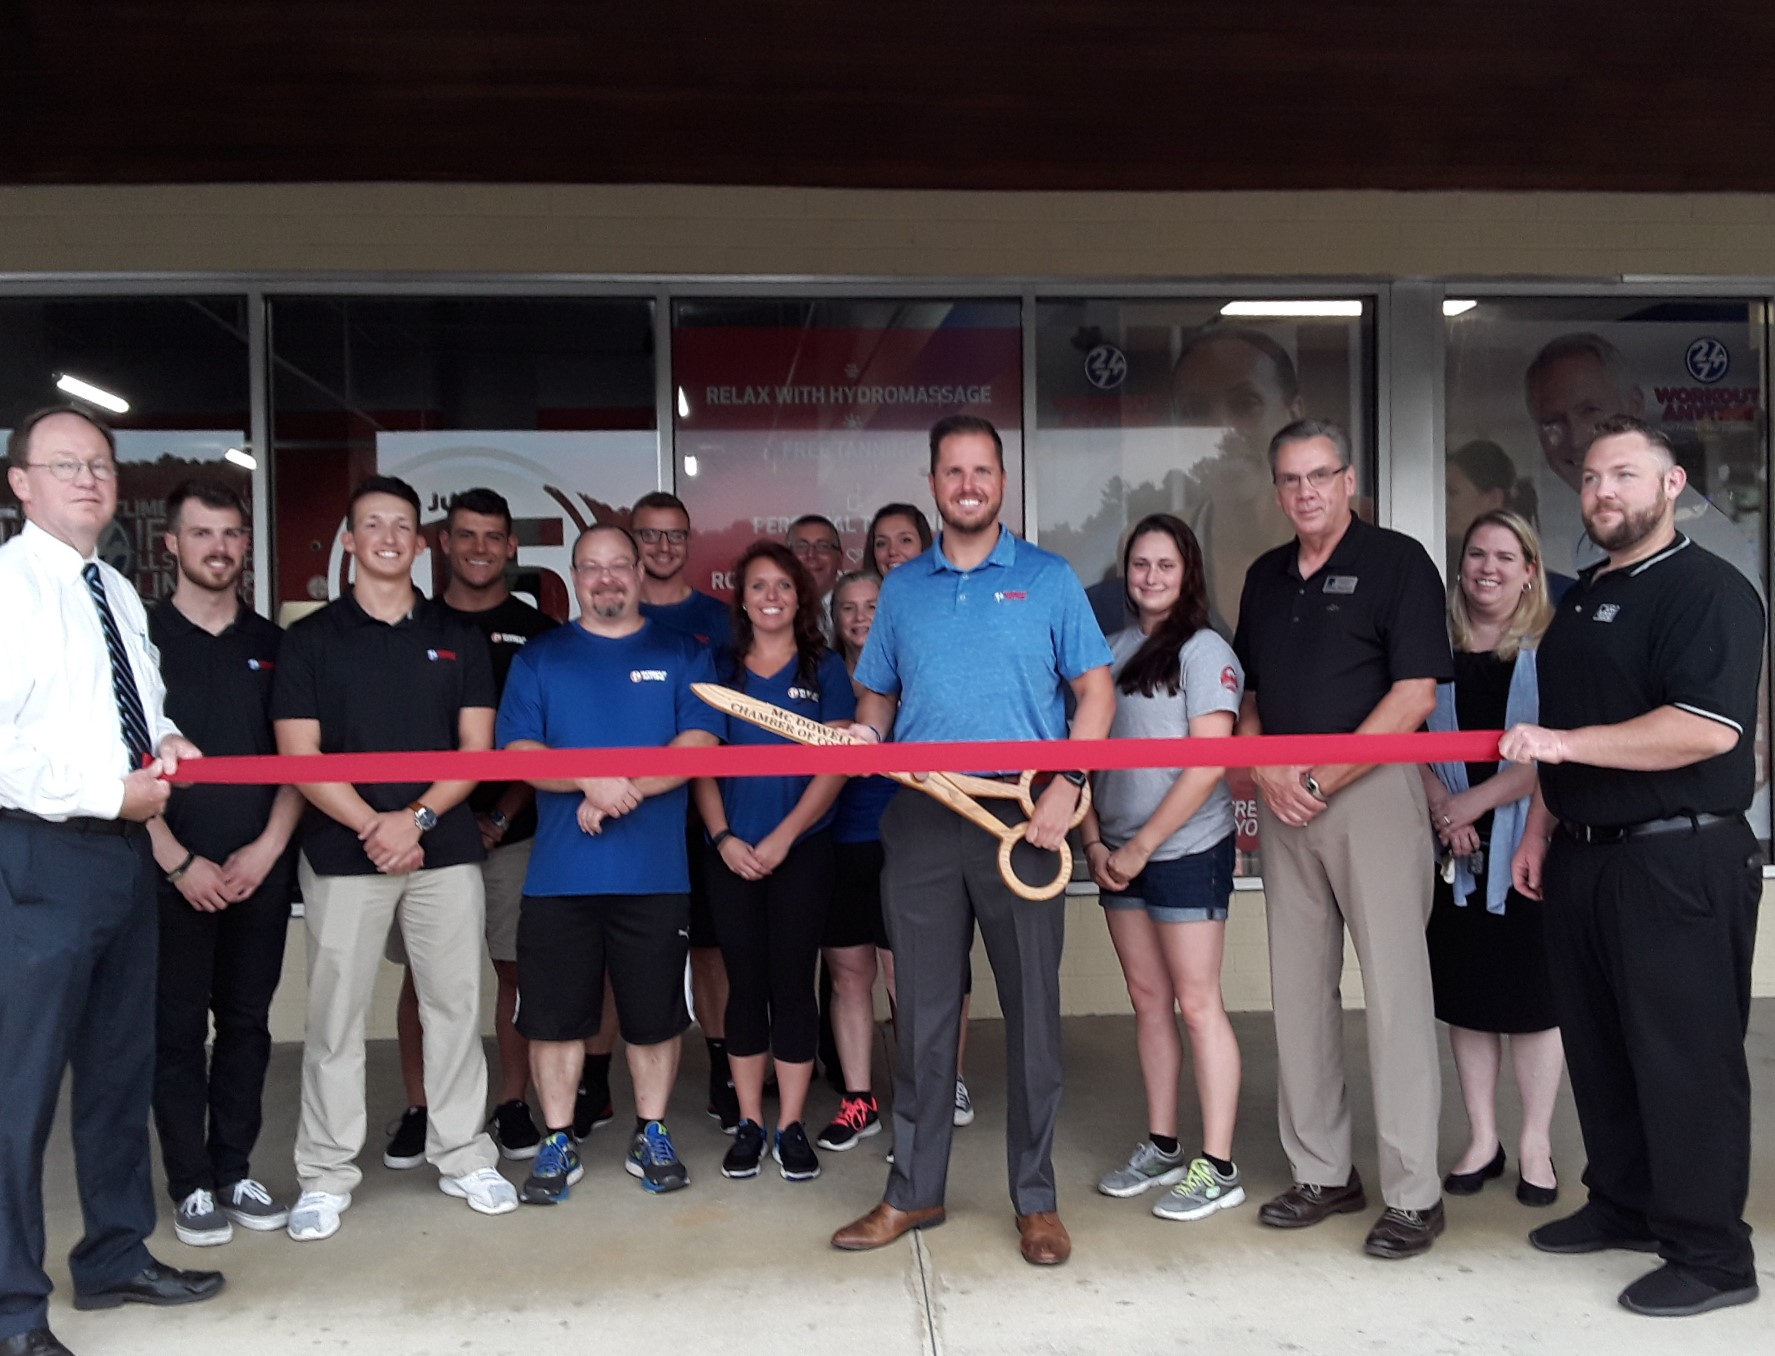 Workout Anytime of Marion - Ribbon Cutting - McDowell Chamber